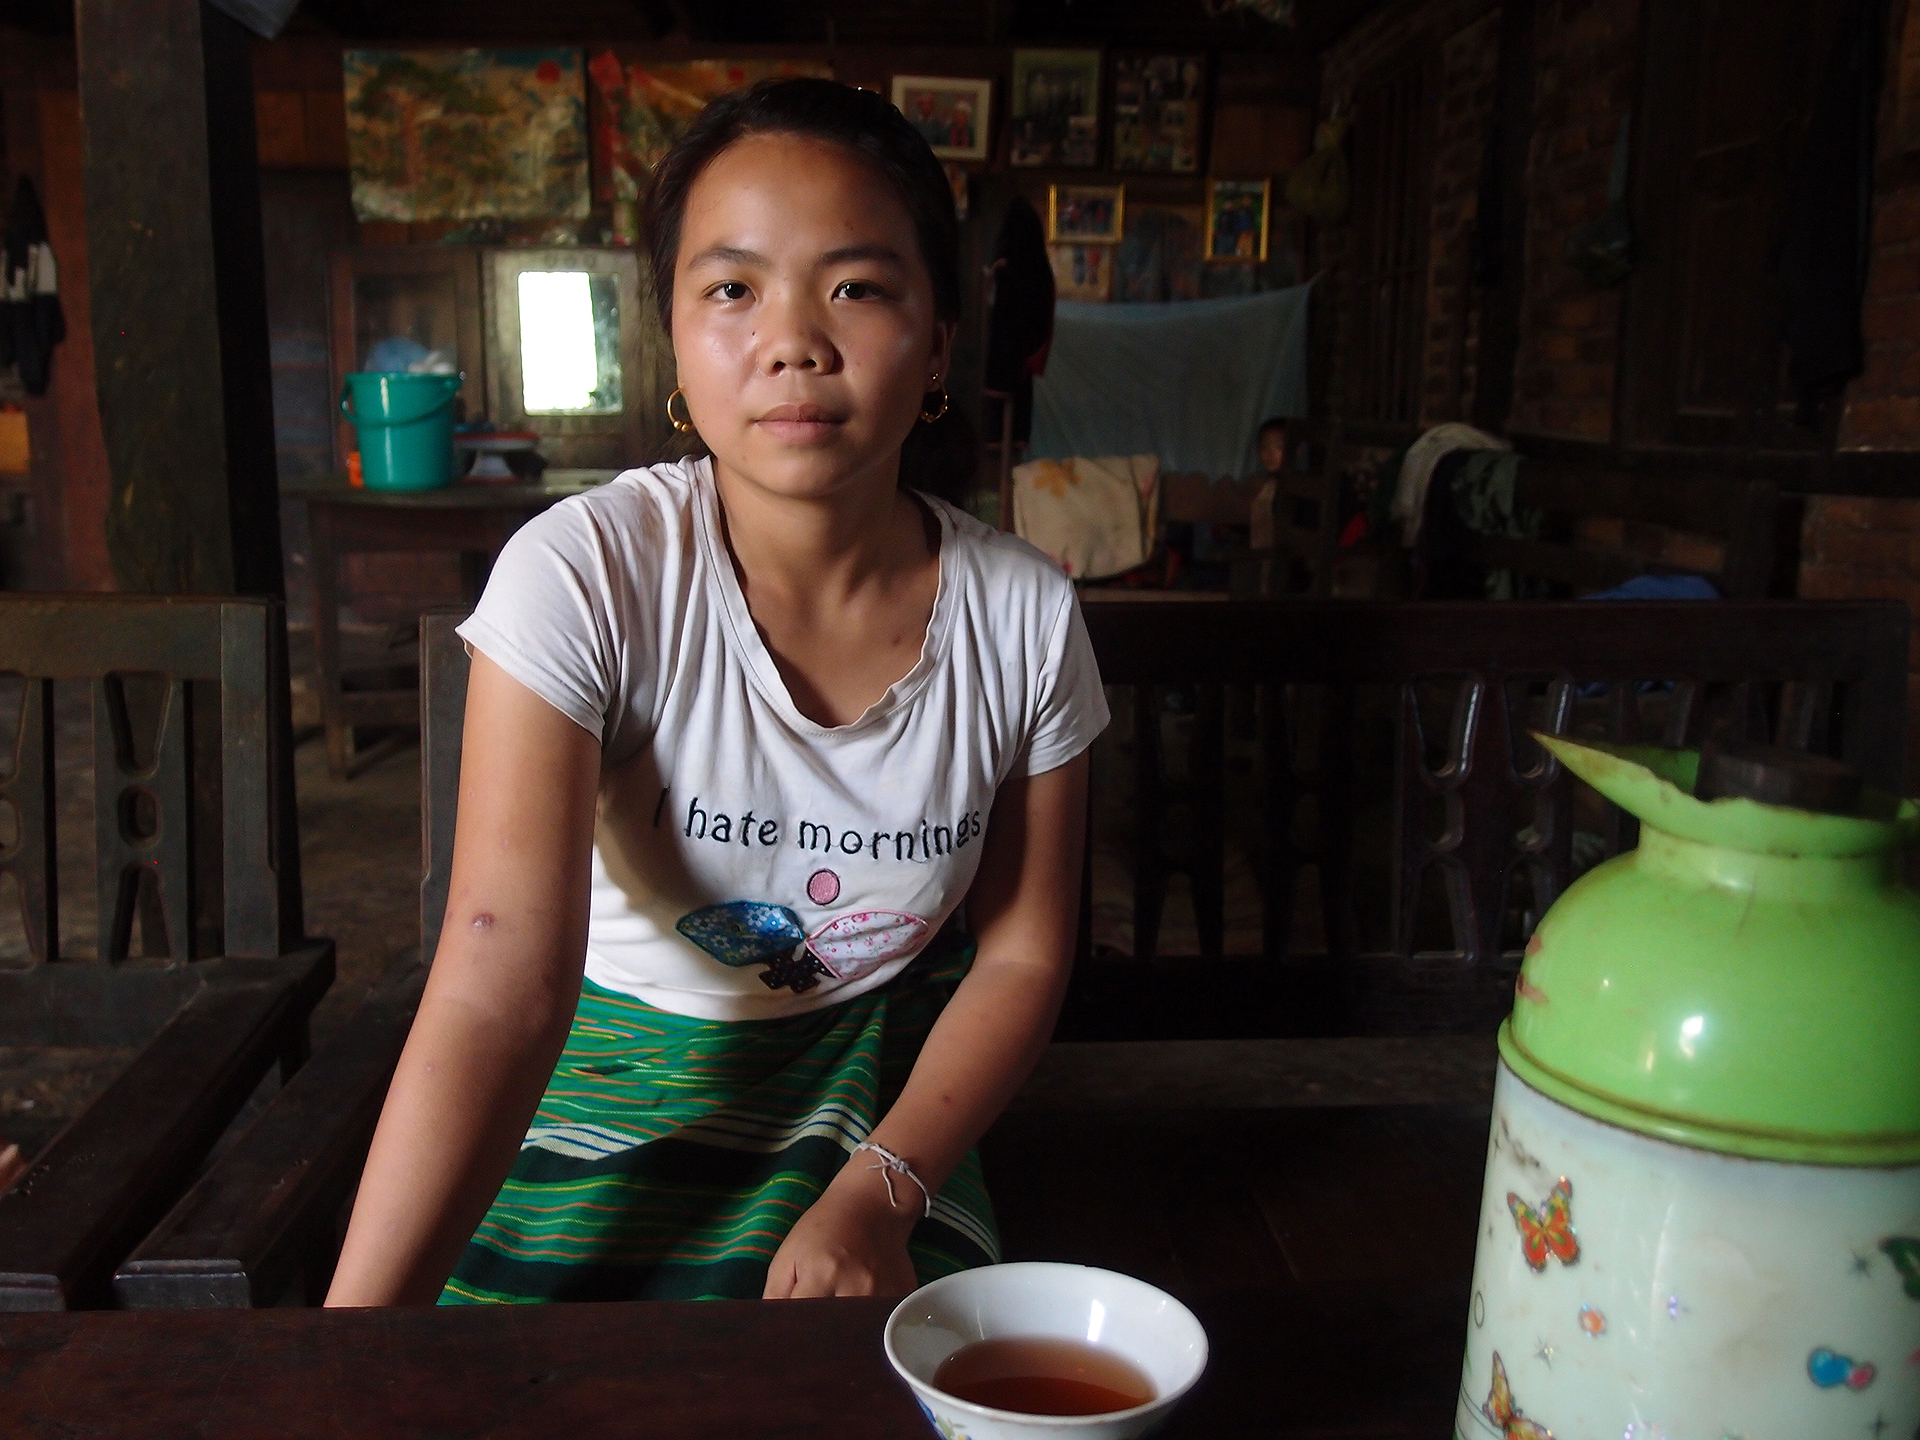 Portrait of young person in Myanmar with tea and a shirt that says